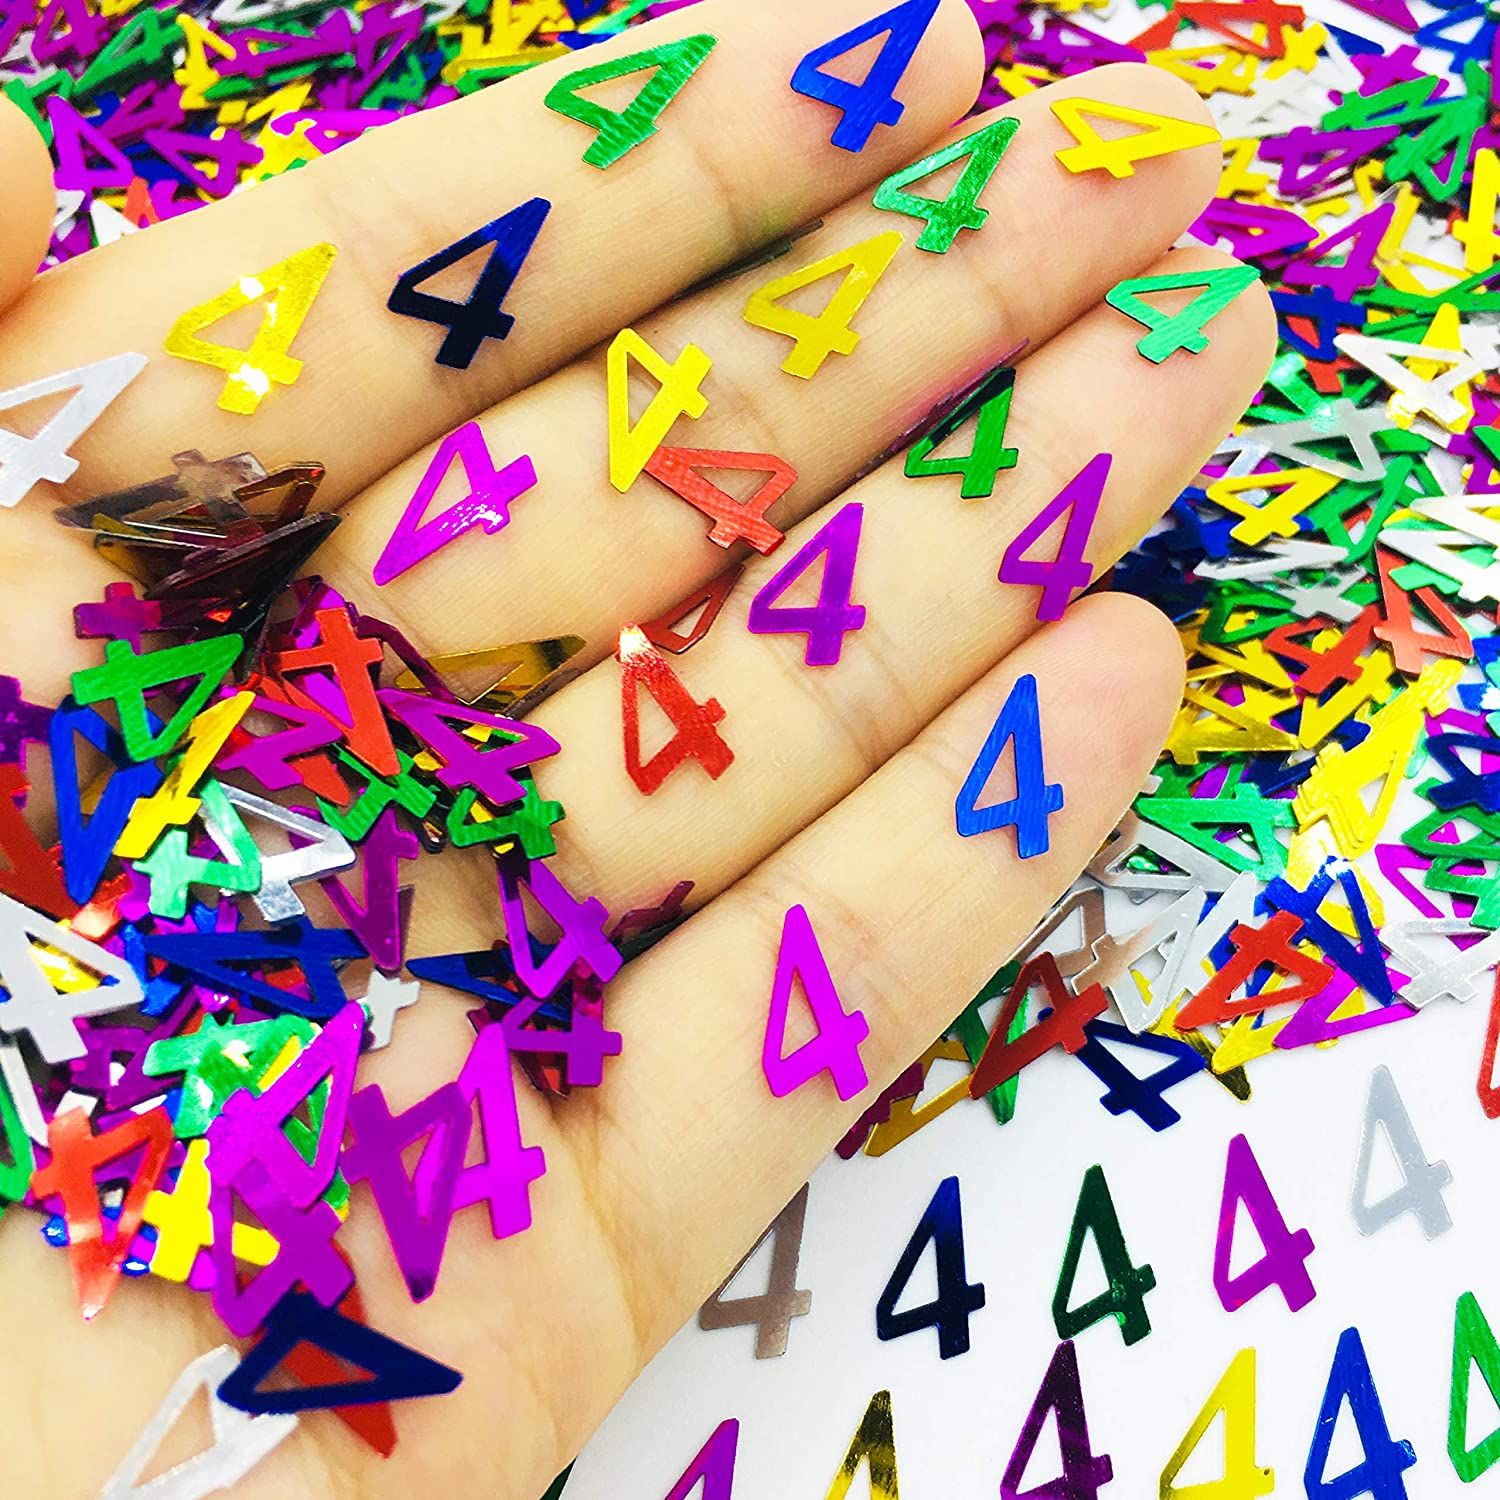 20 Colourful Glittery Foil Number 40 Confetti Pieces Birthday Party Decor Anniversary Card-making Kids Decoration Boy Girl Table Number